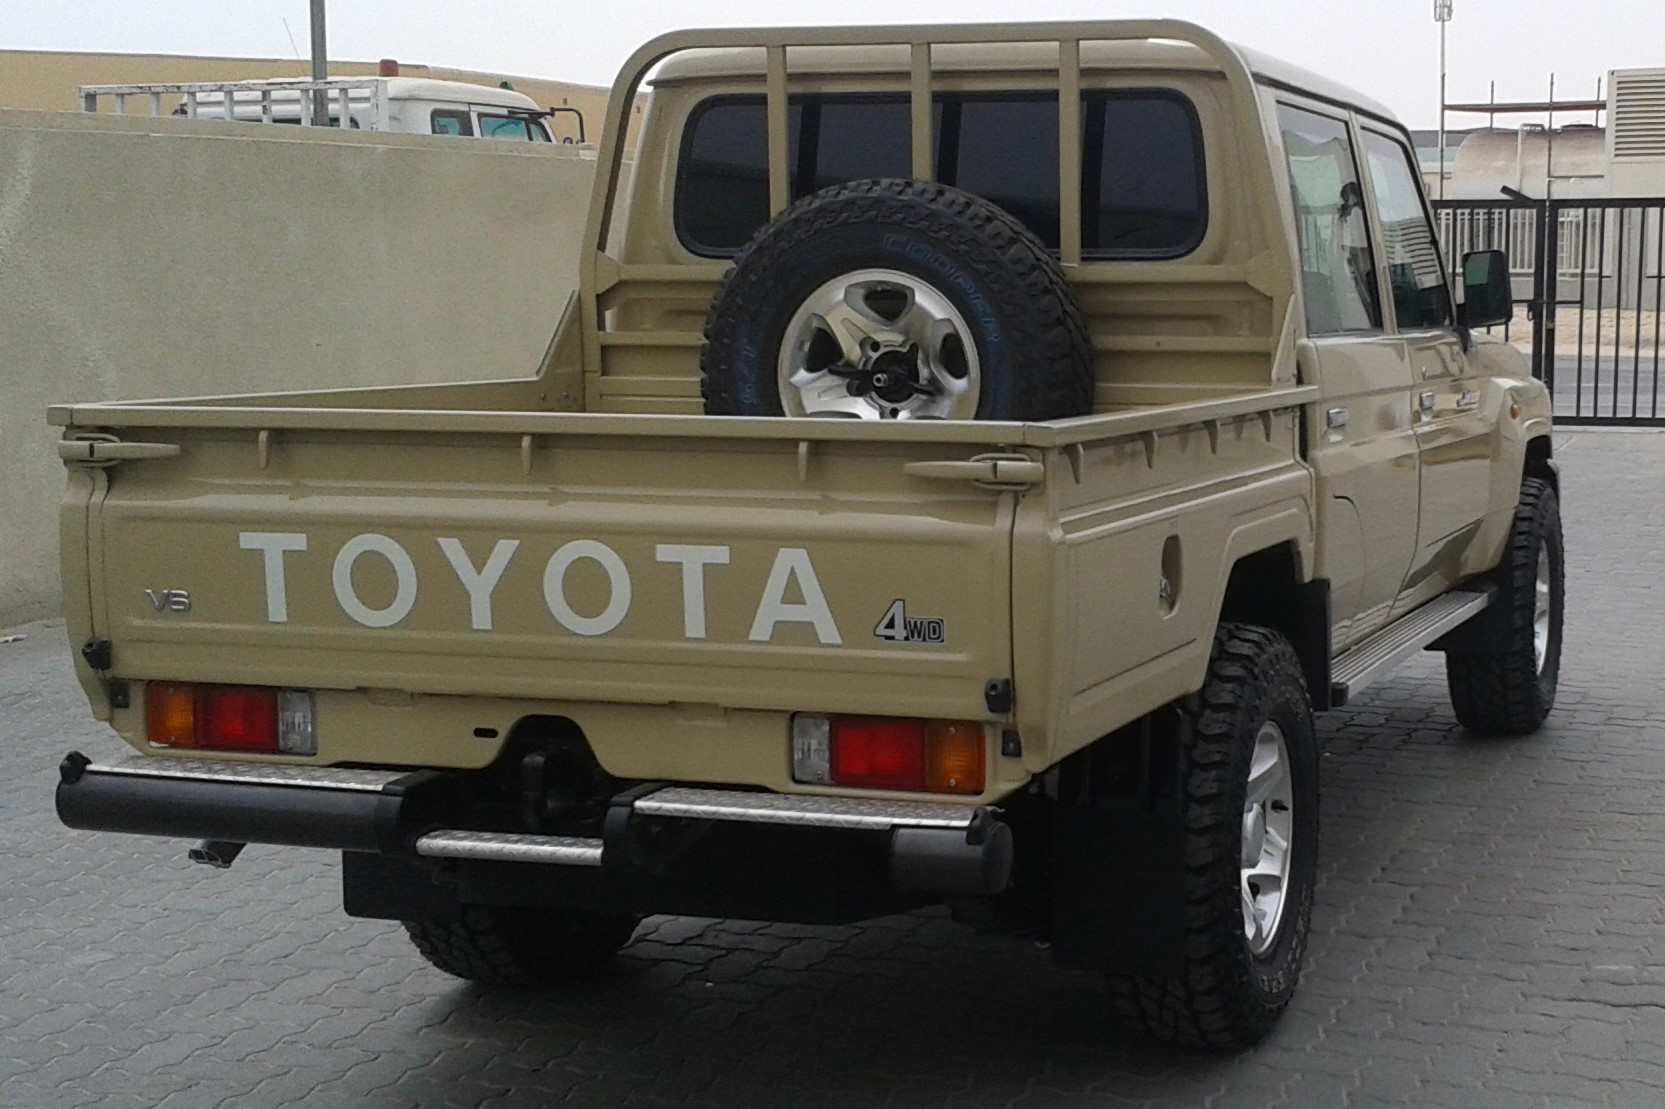 Toyota Lc79 Utility Truck